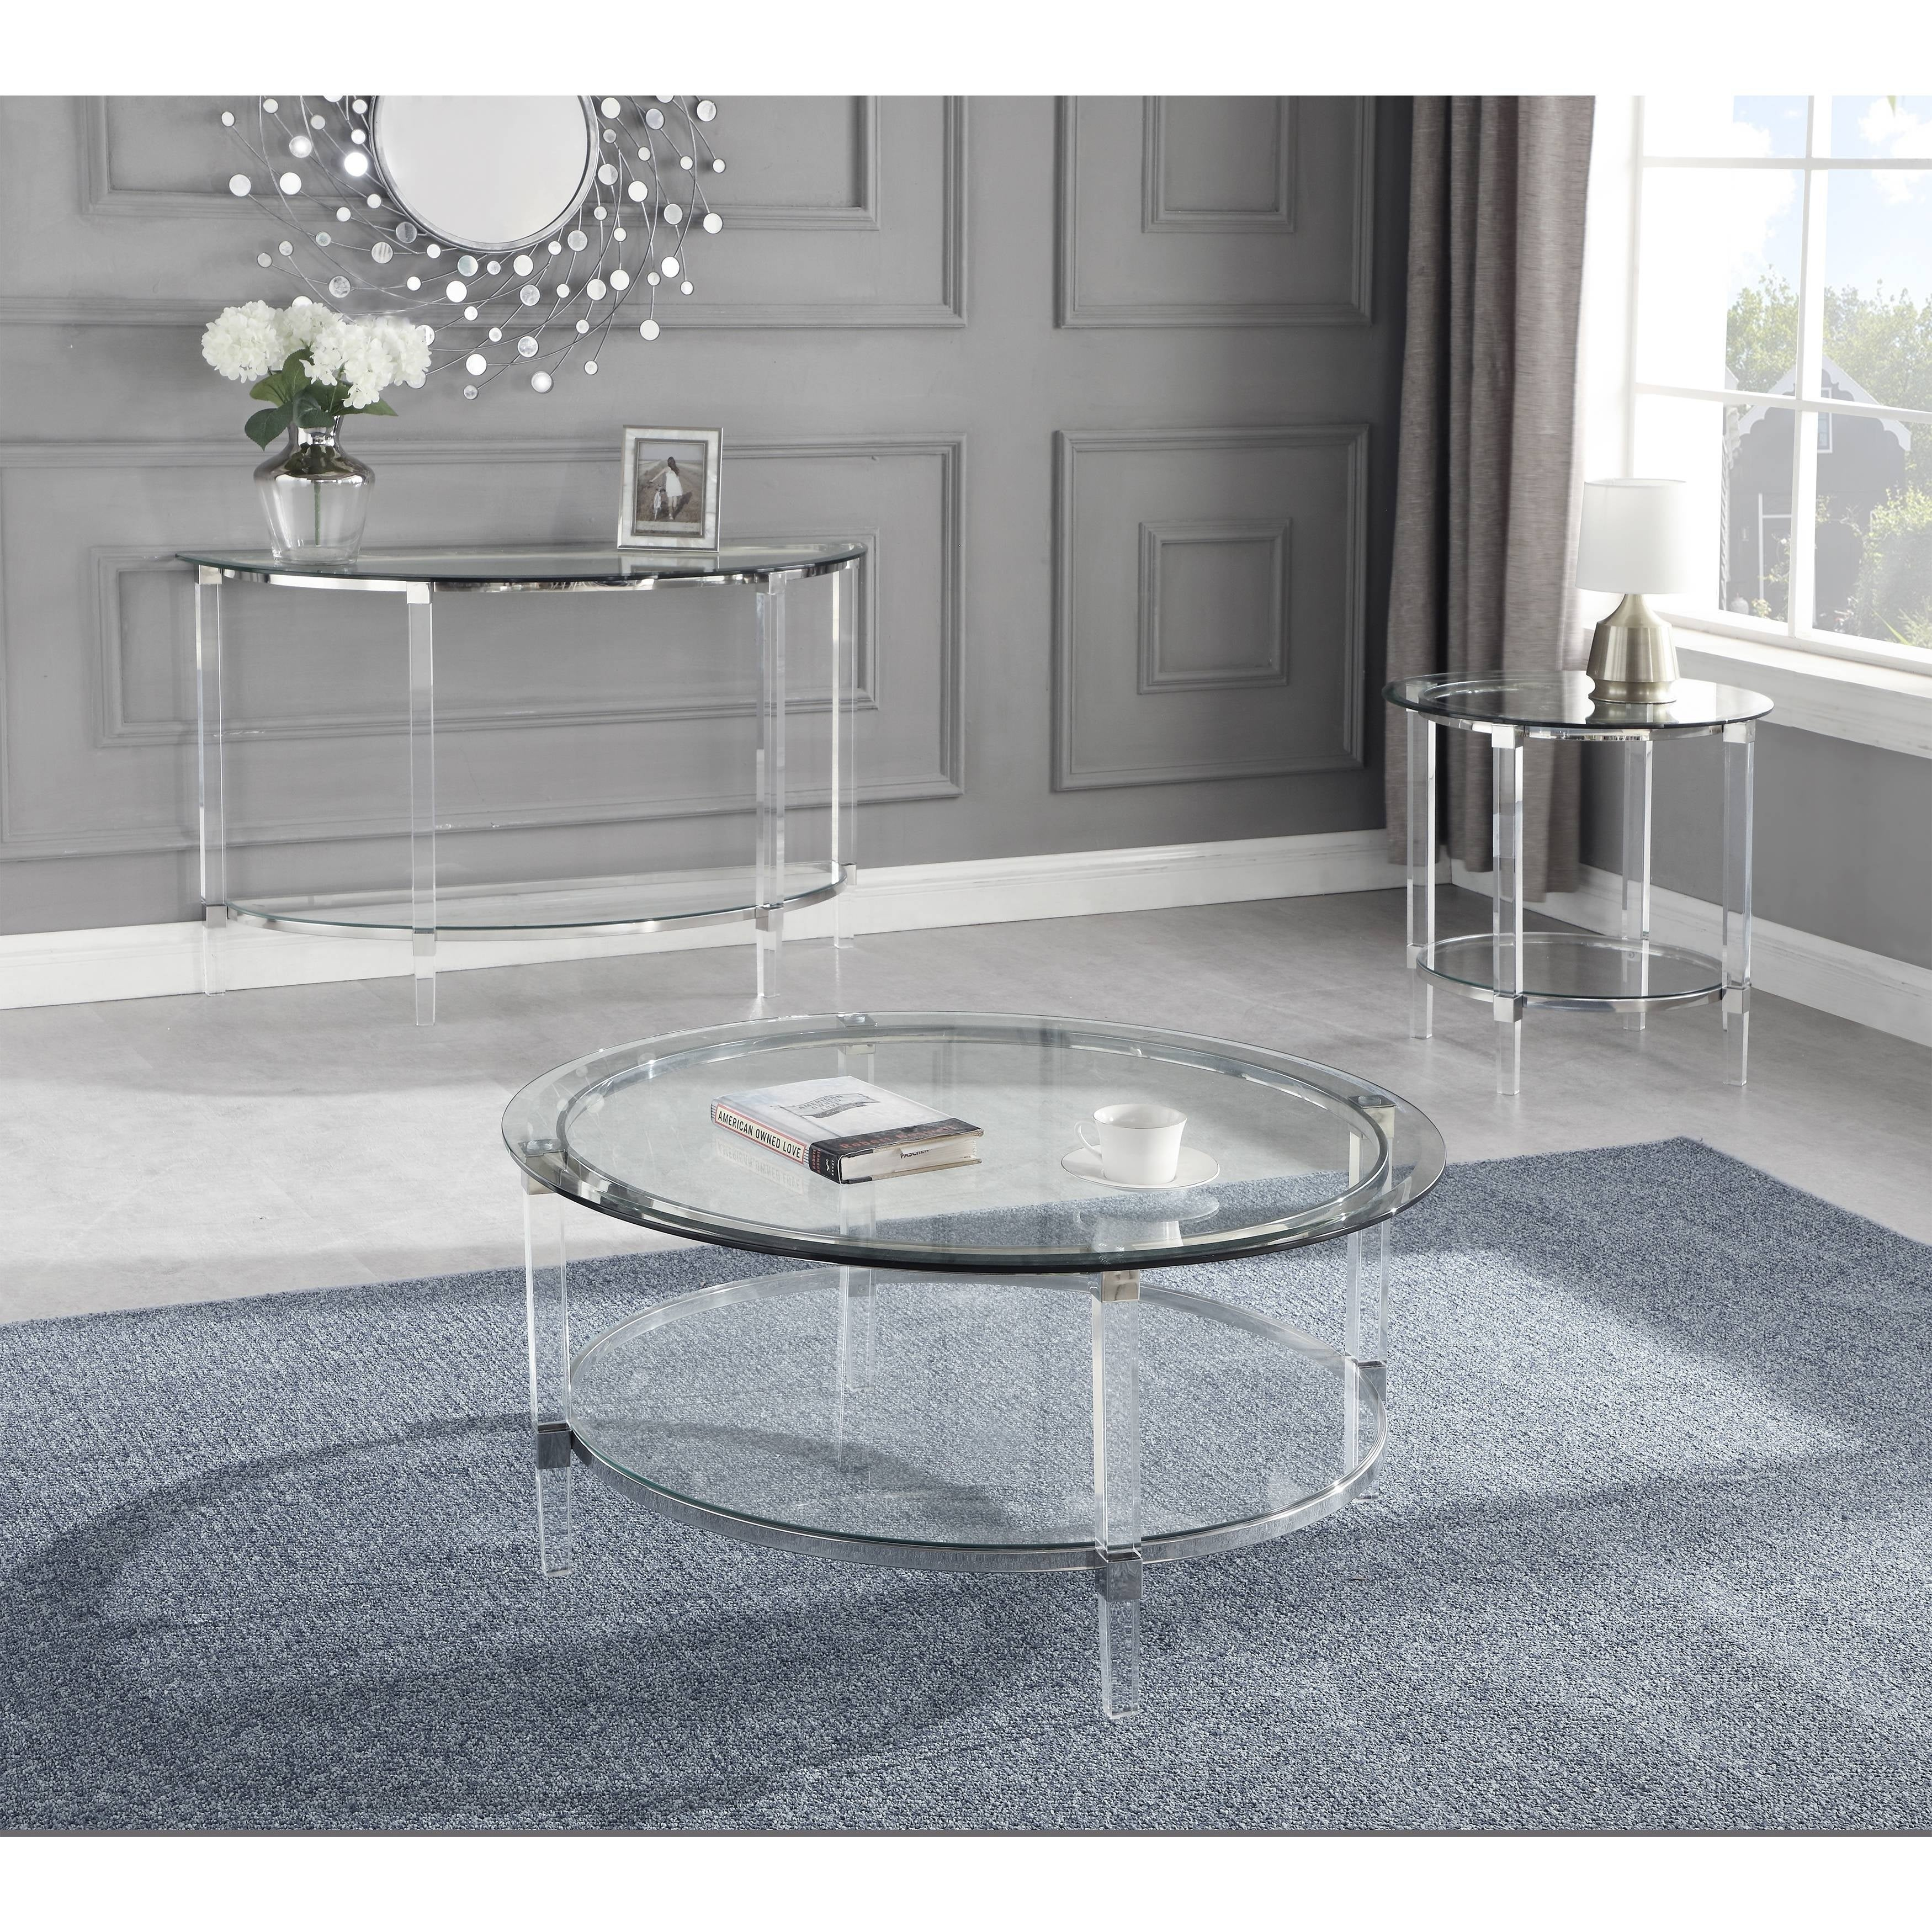 Best Quality Furniture 3pc Coffee Table Set Glass Top Acrylic Legs Coffee Table End Table Console Table On Sale Overstock 30501382